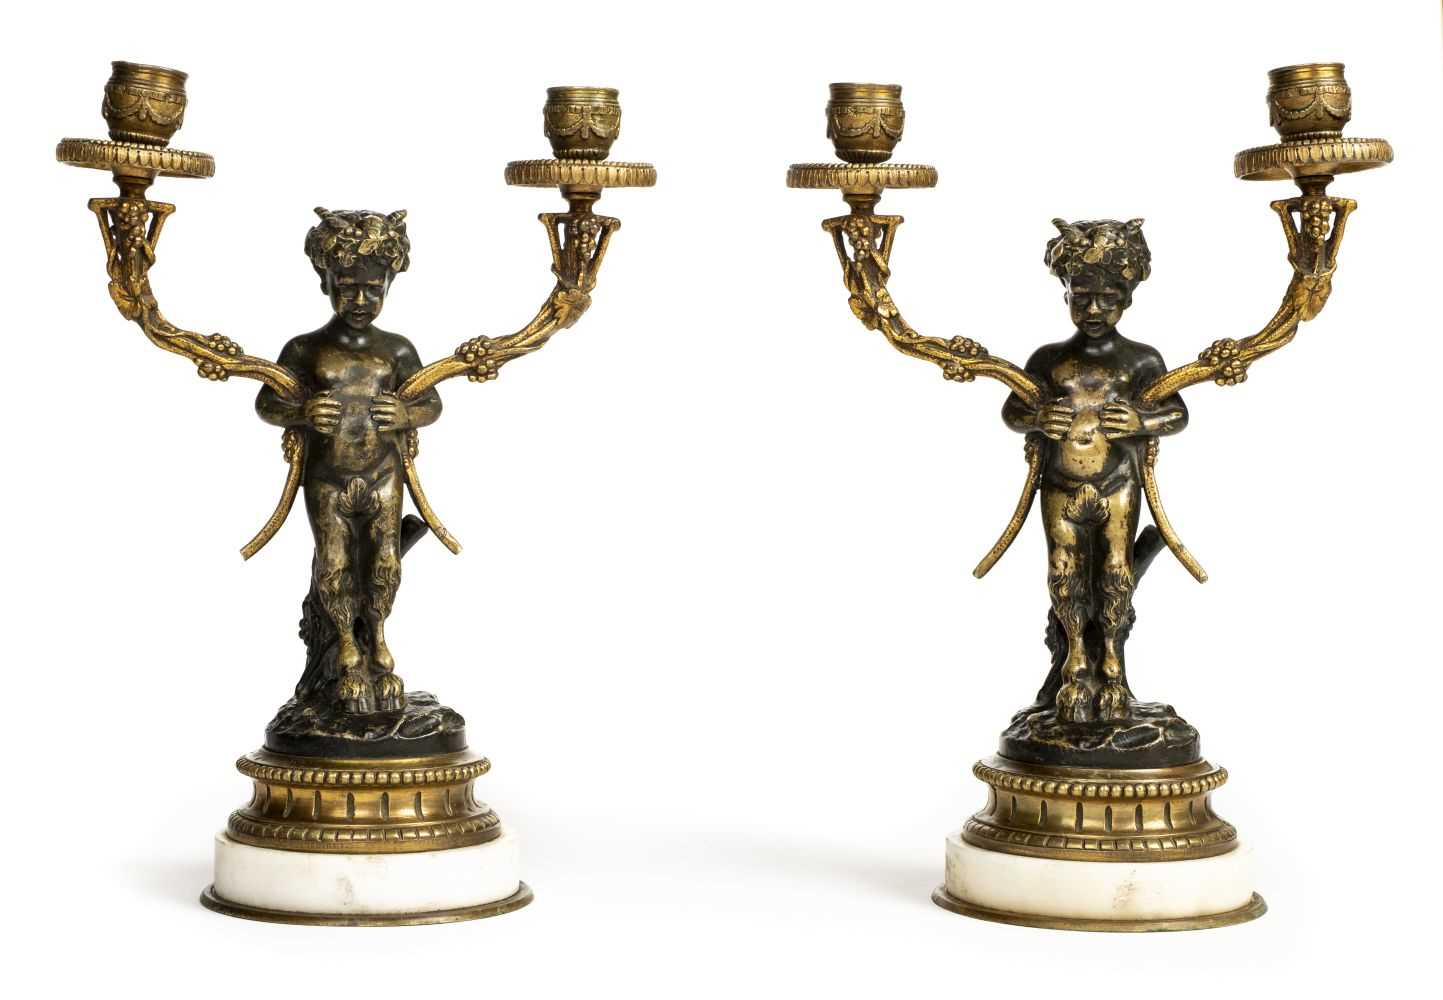 Lot 47 - Candelabra. A pair of 19th century candelabra modelled as Satyr